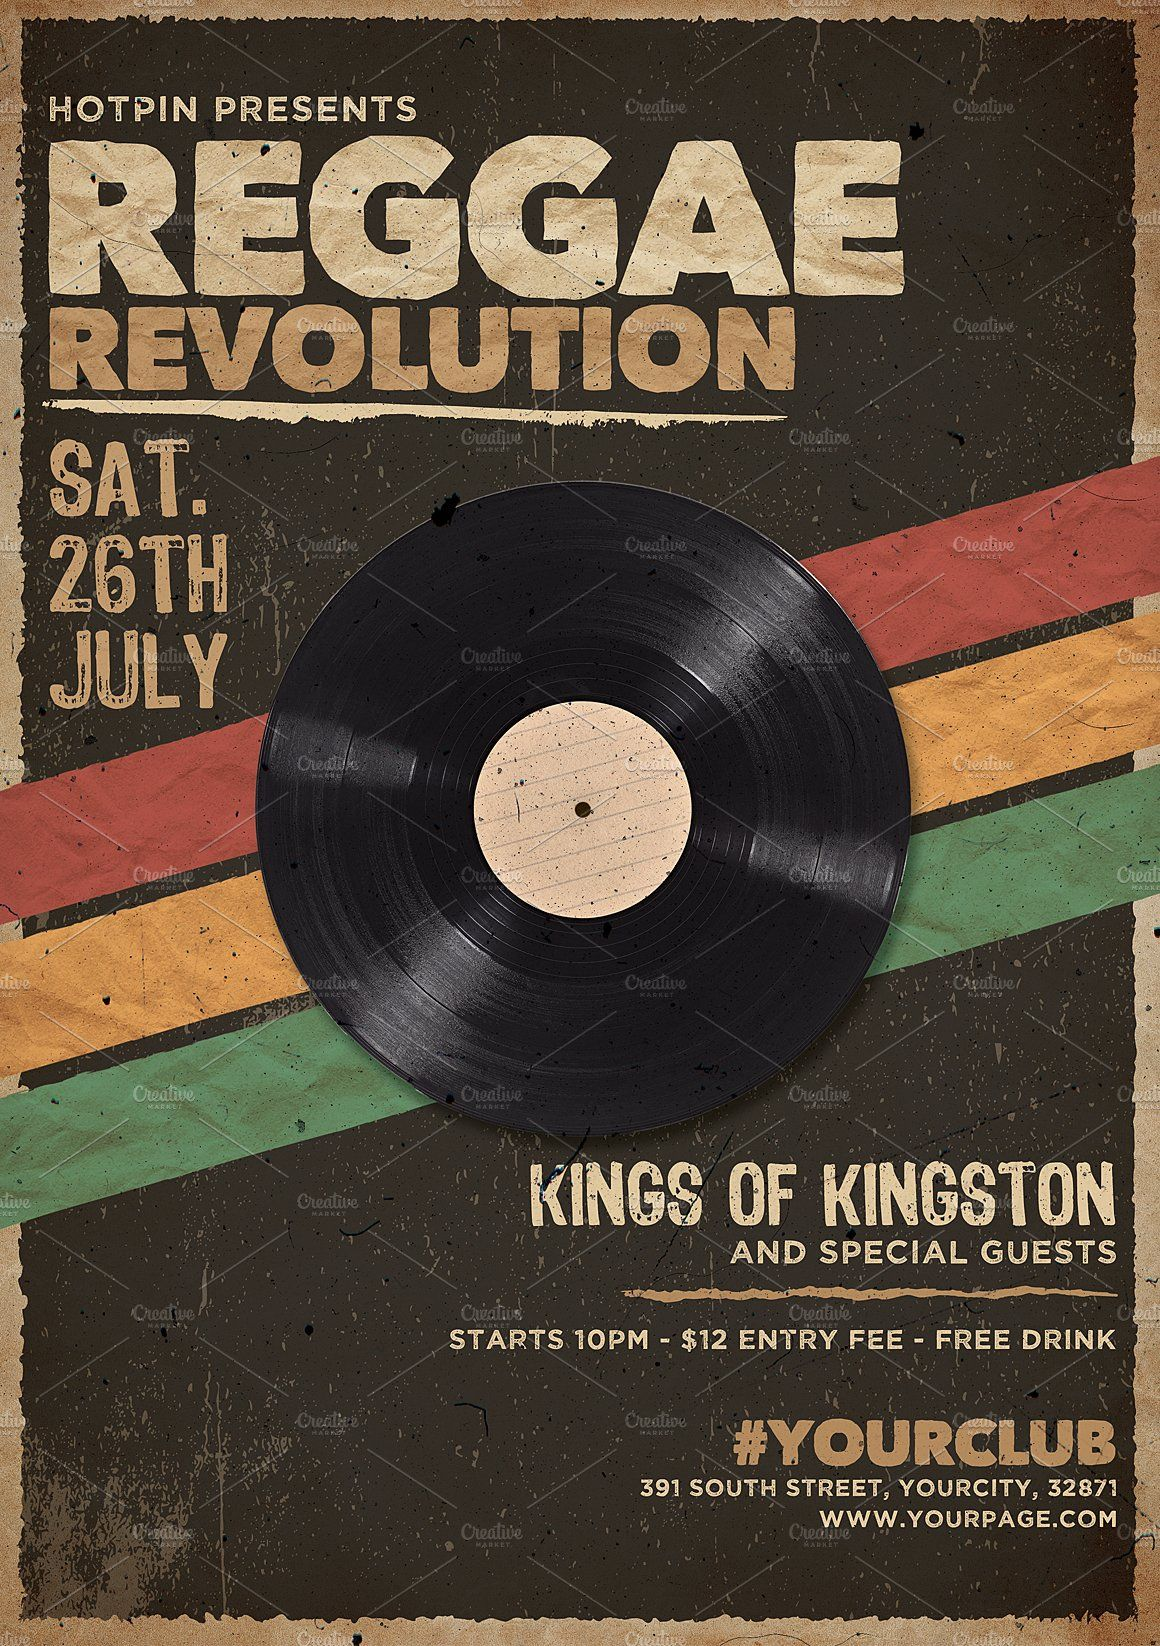 Reggae Party Flyer Template Vintage Poster Design Reggae Party